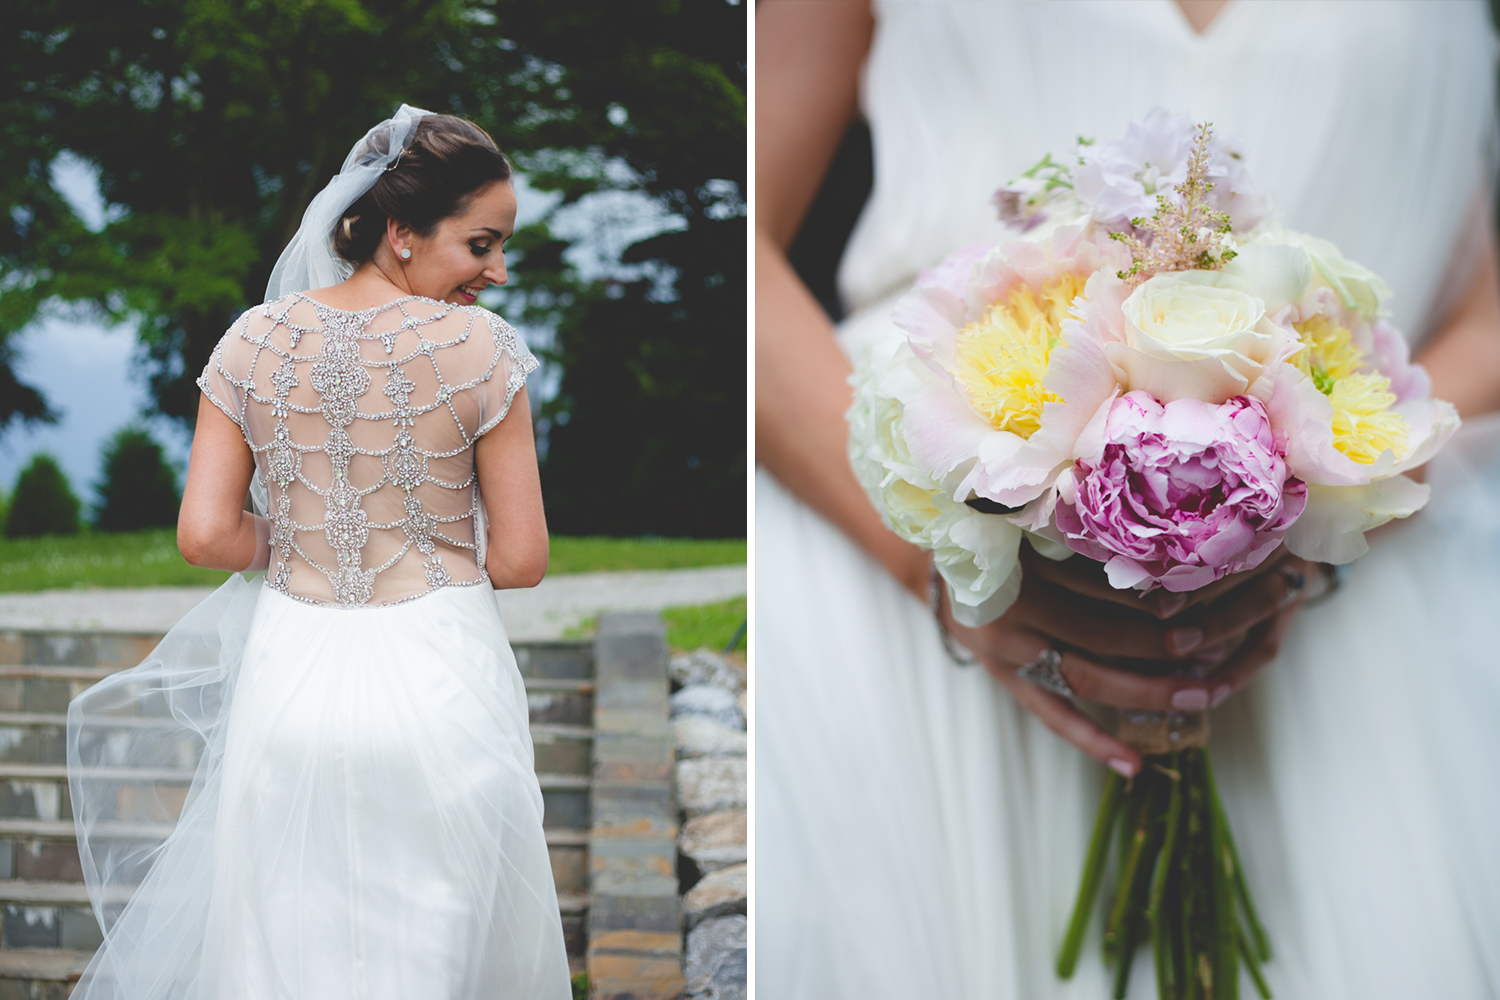 Silver embellished wedding dress and flowers